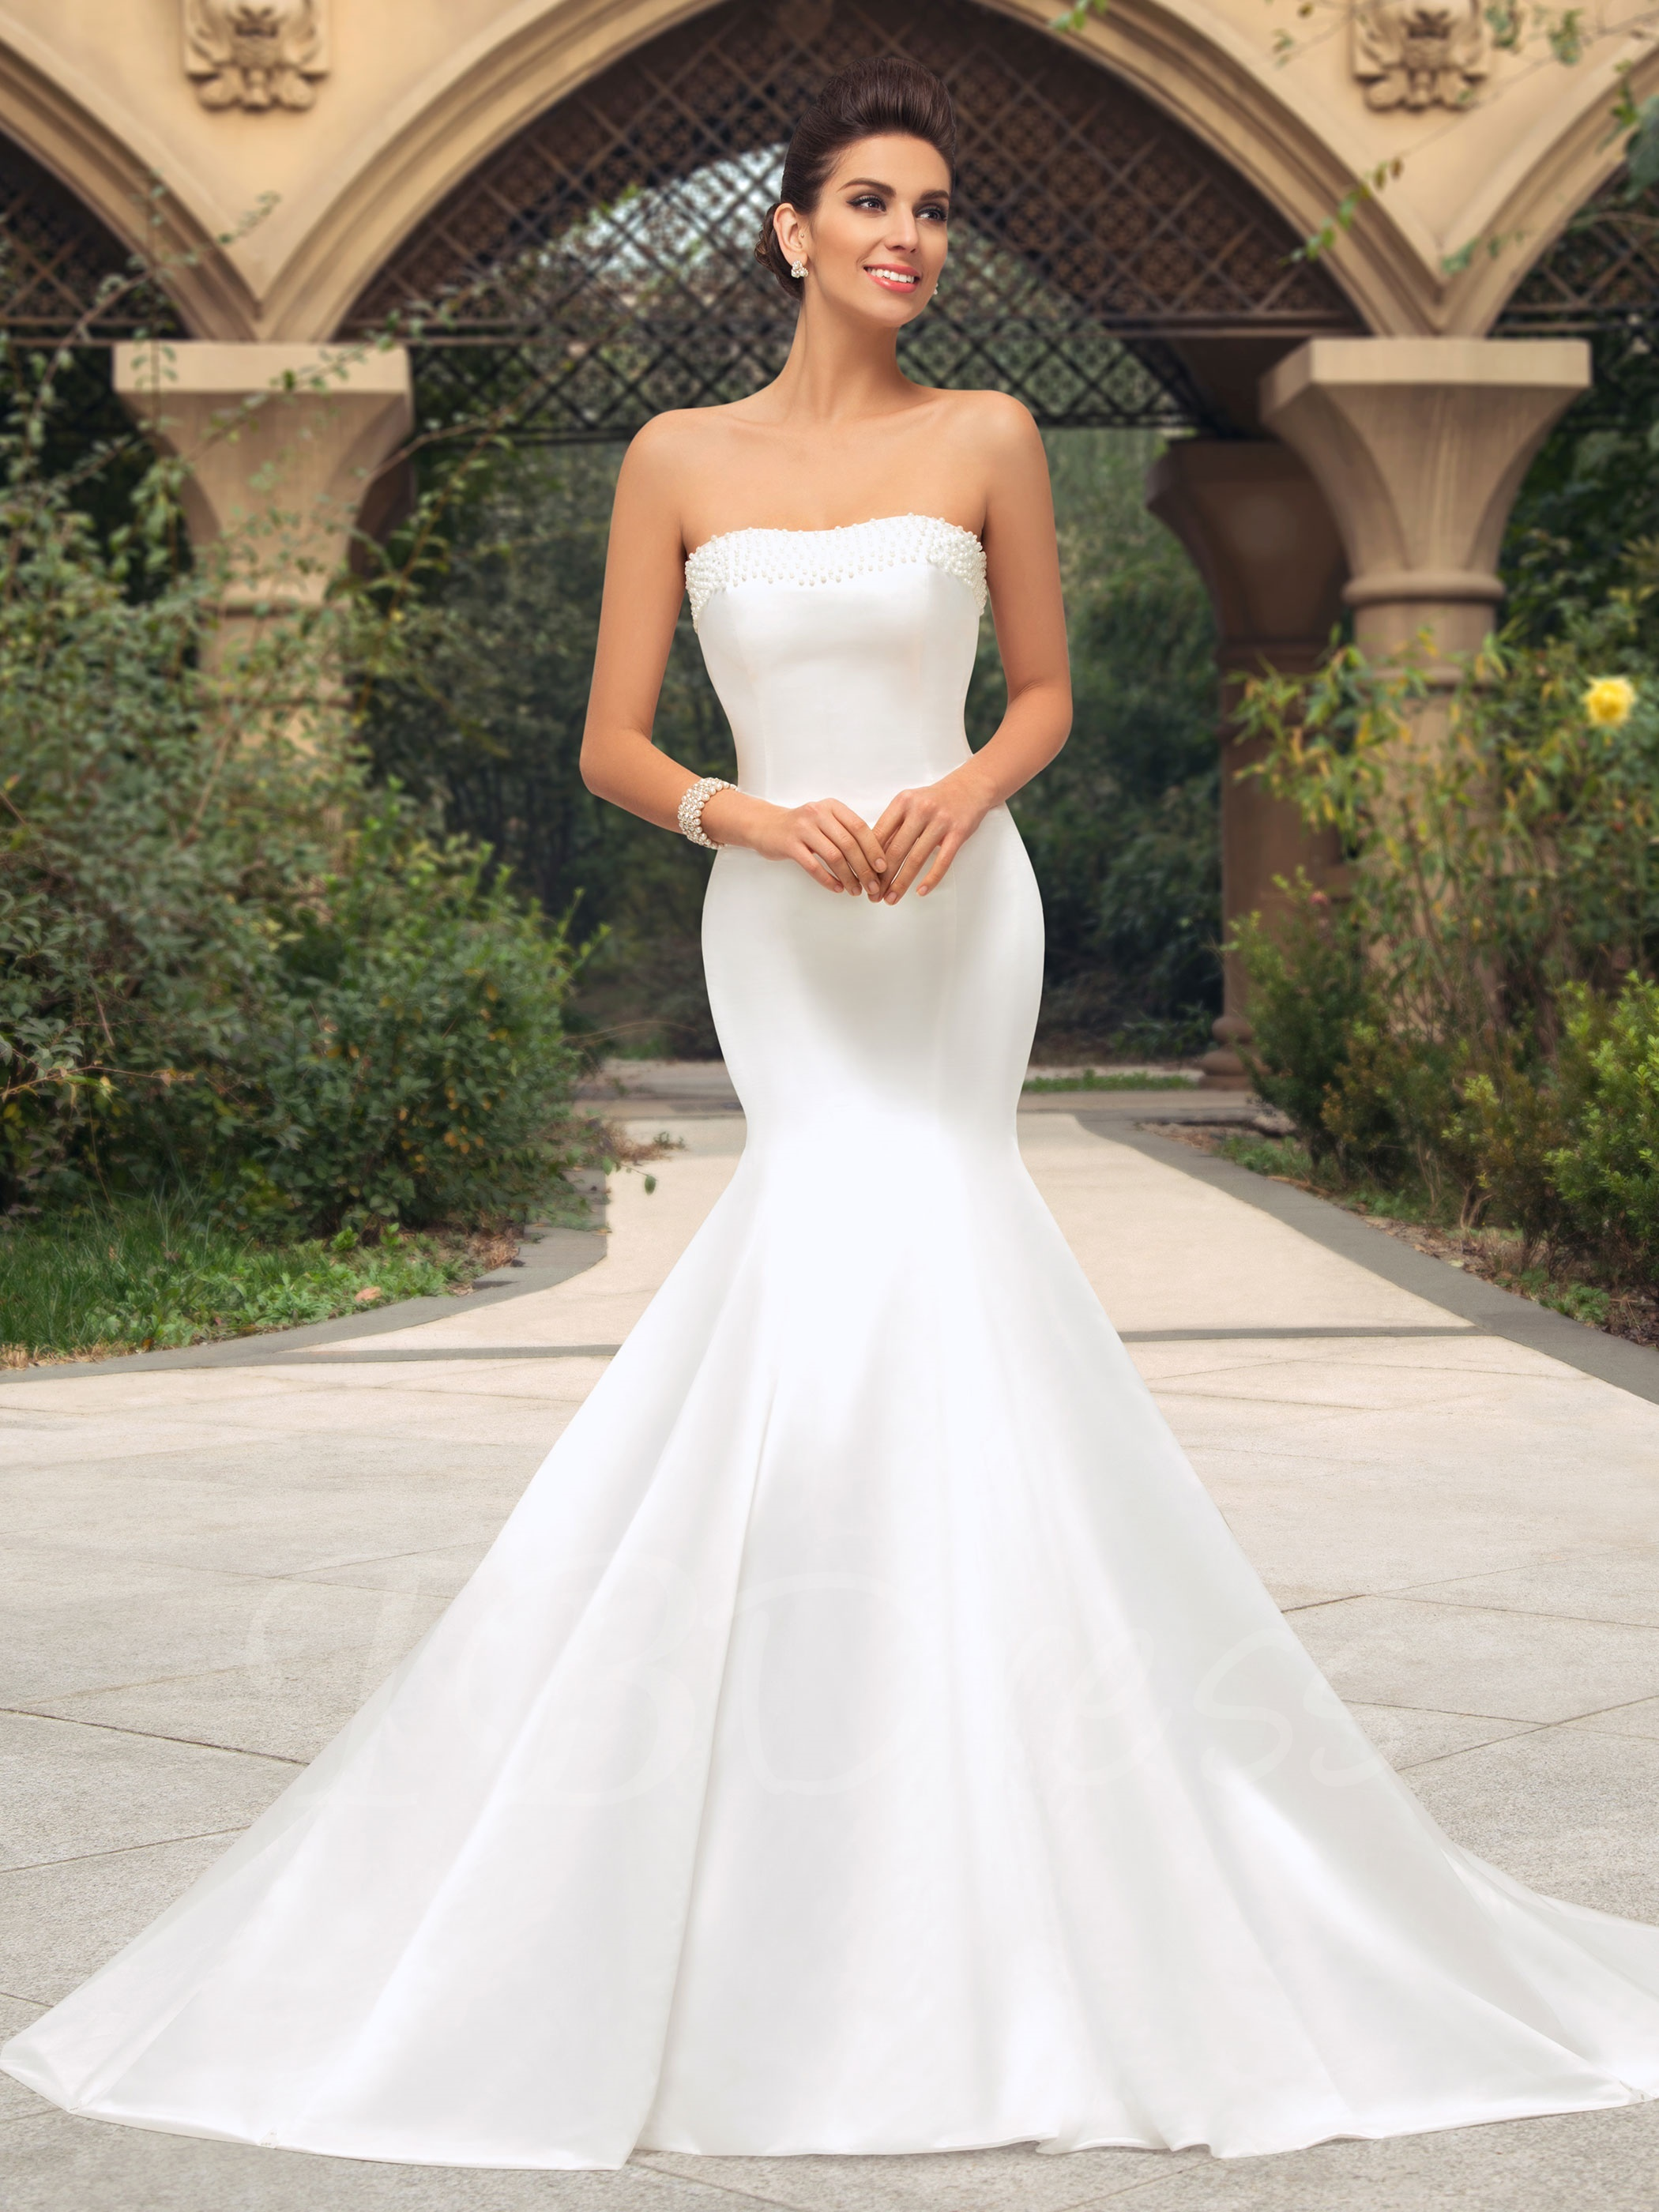 35 Inspirational Ideas Of Simple Wedding Dresses | The Best Wedding Dresses